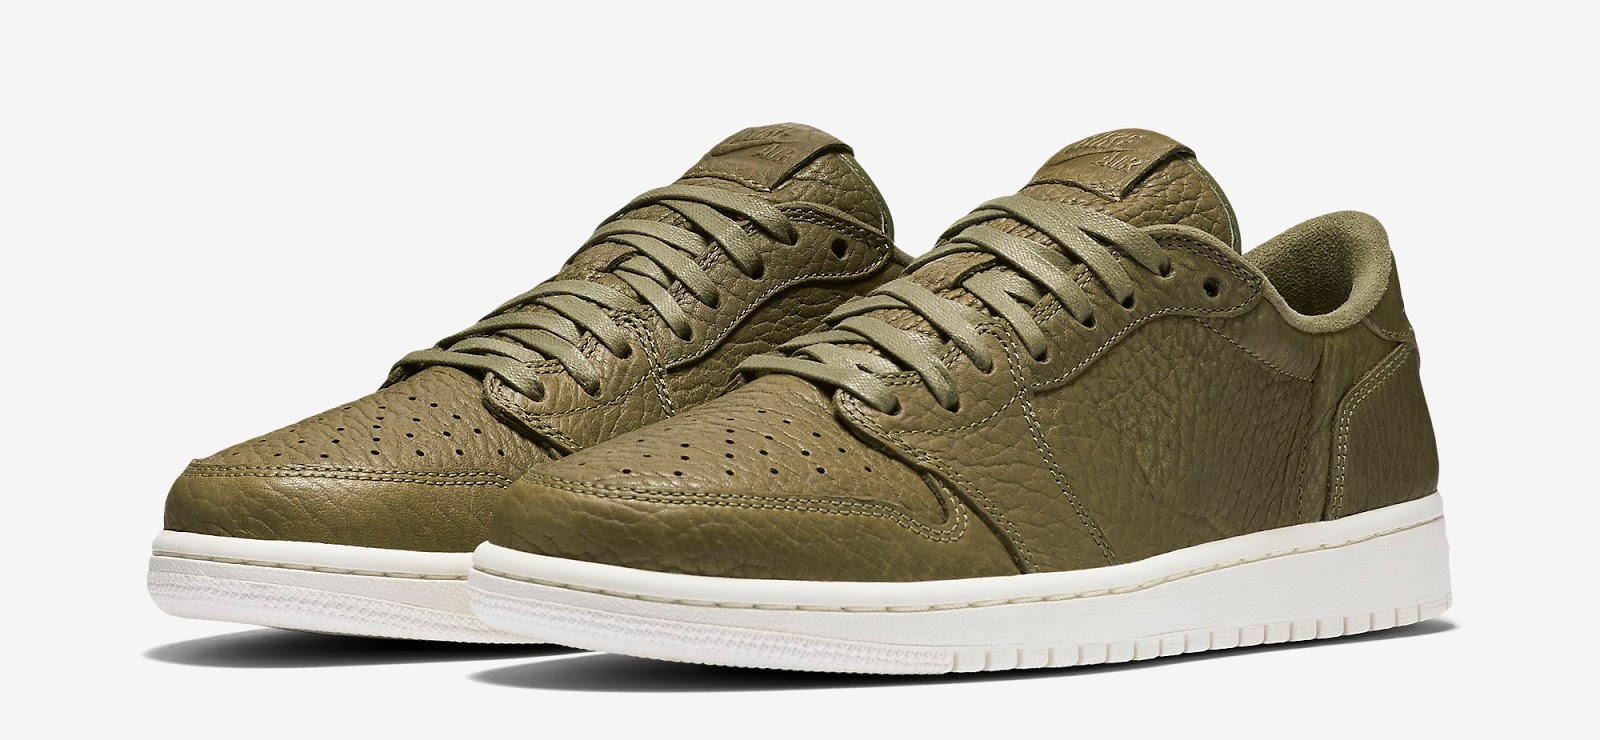 110801638bd2 The Air Jordan 1 Retro Low NS is set to make its debut this weekend.